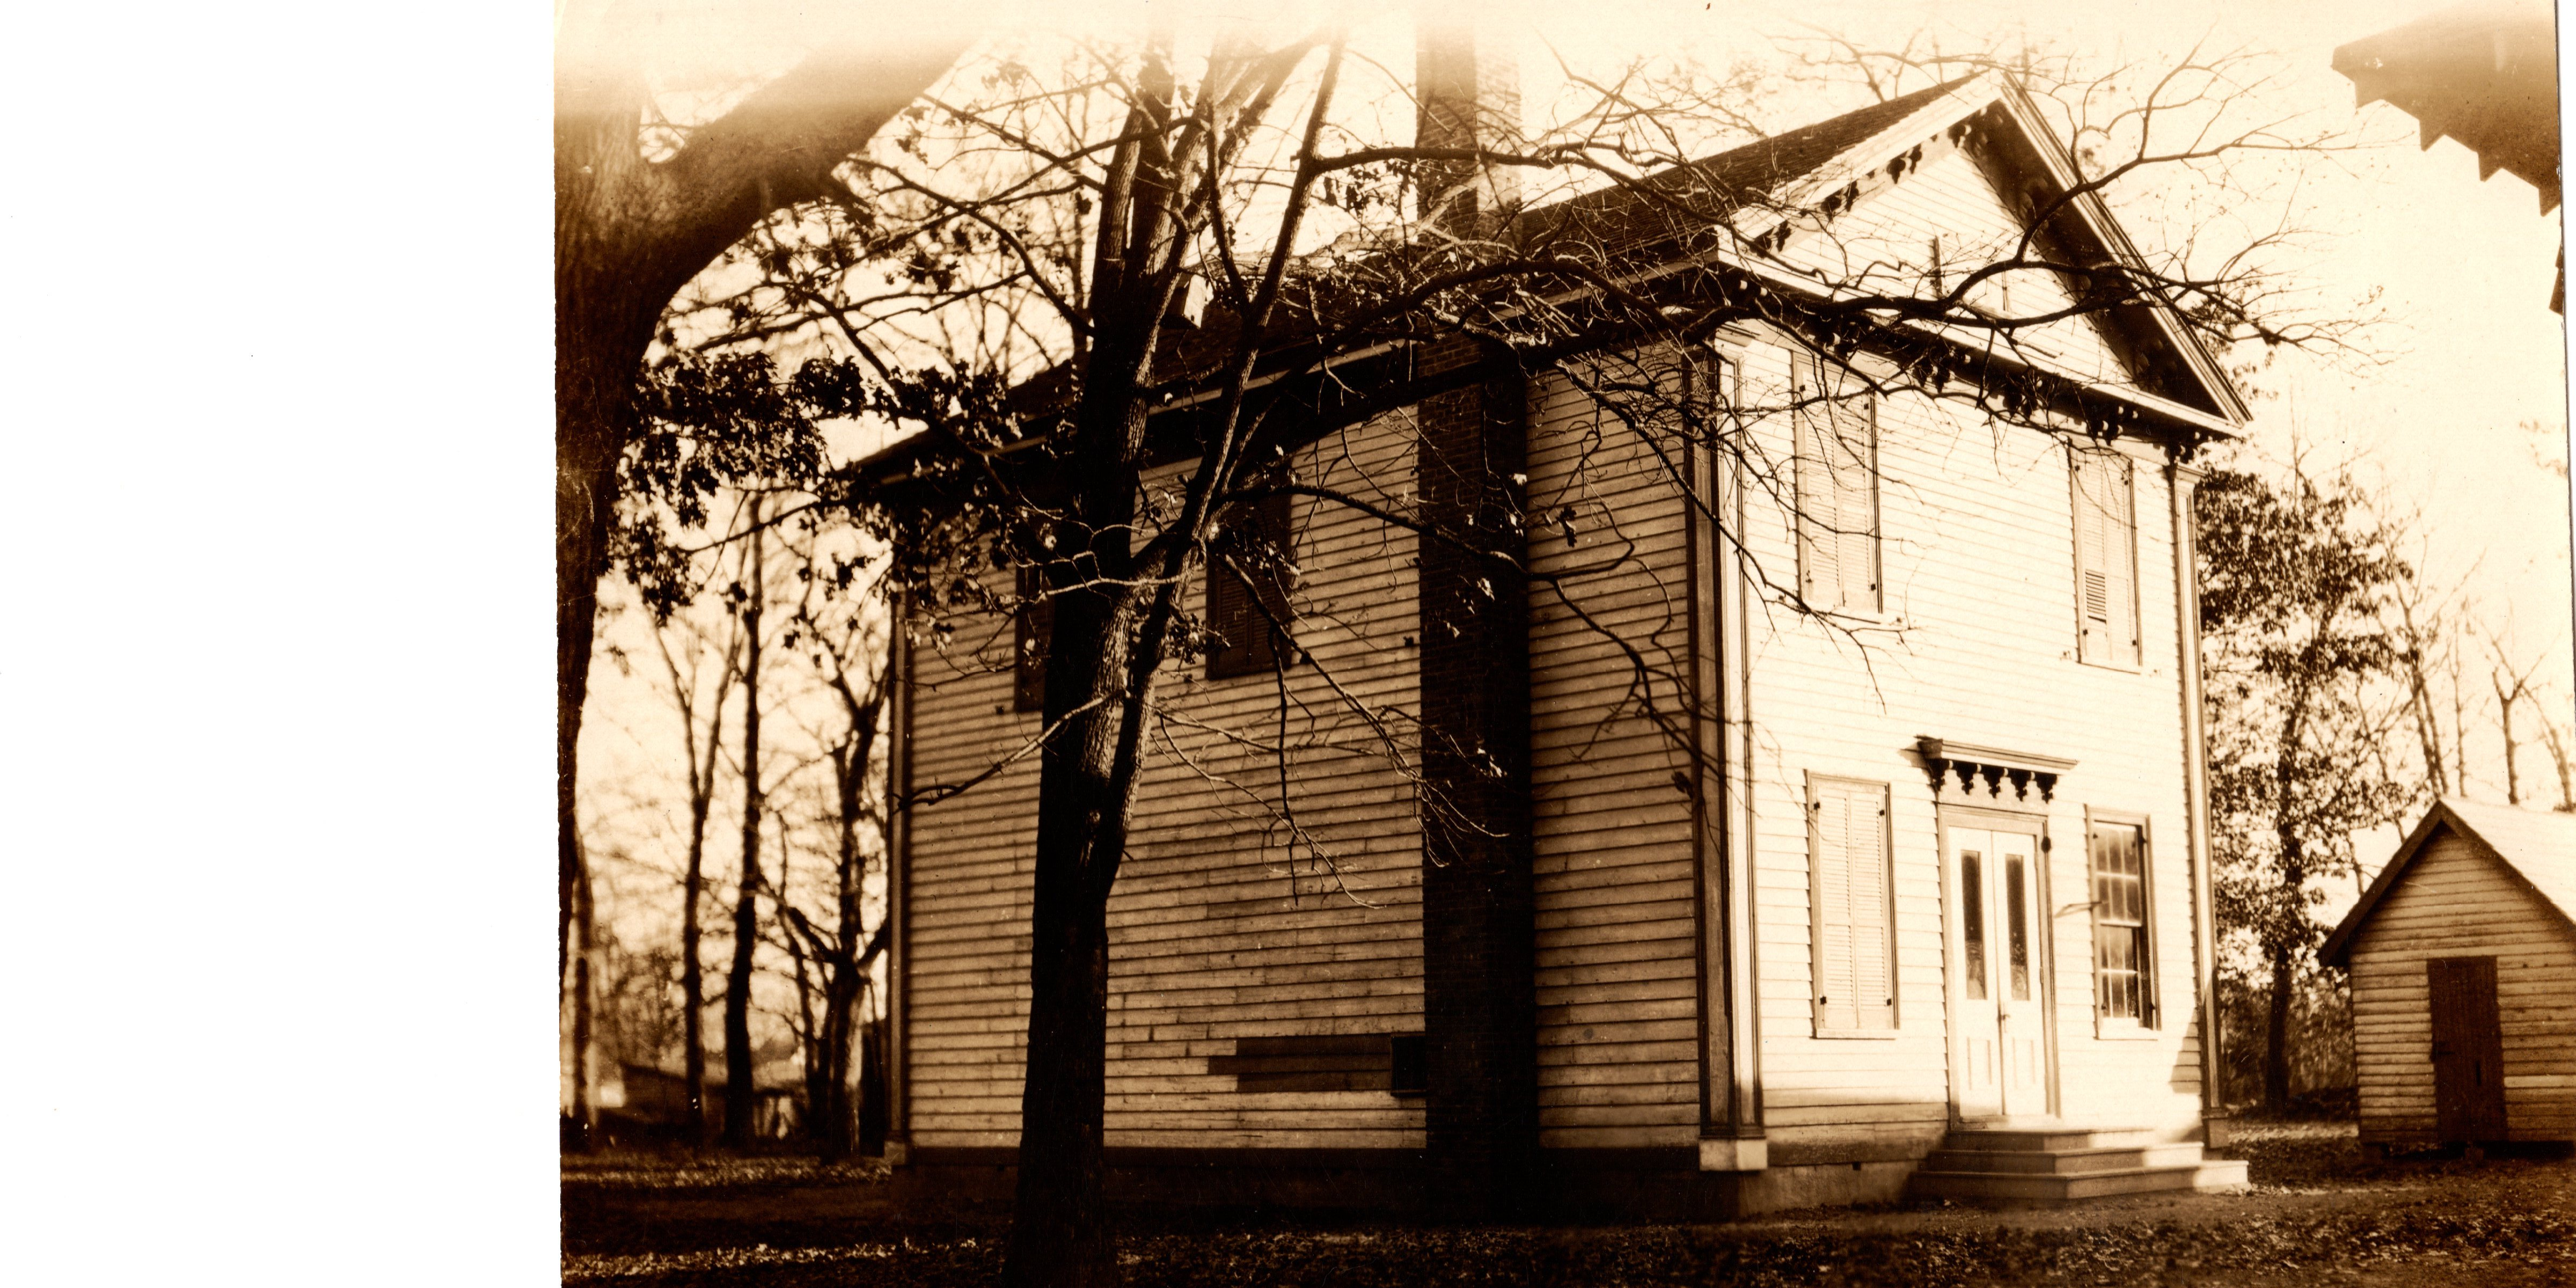 """This is a photo of what may be the very first Public School built in Upper Township, """"The Tuckahoe Academy"""", constructed in 1853; razed about 100 years later when the new Elementary School was built in Marmora in 1953."""